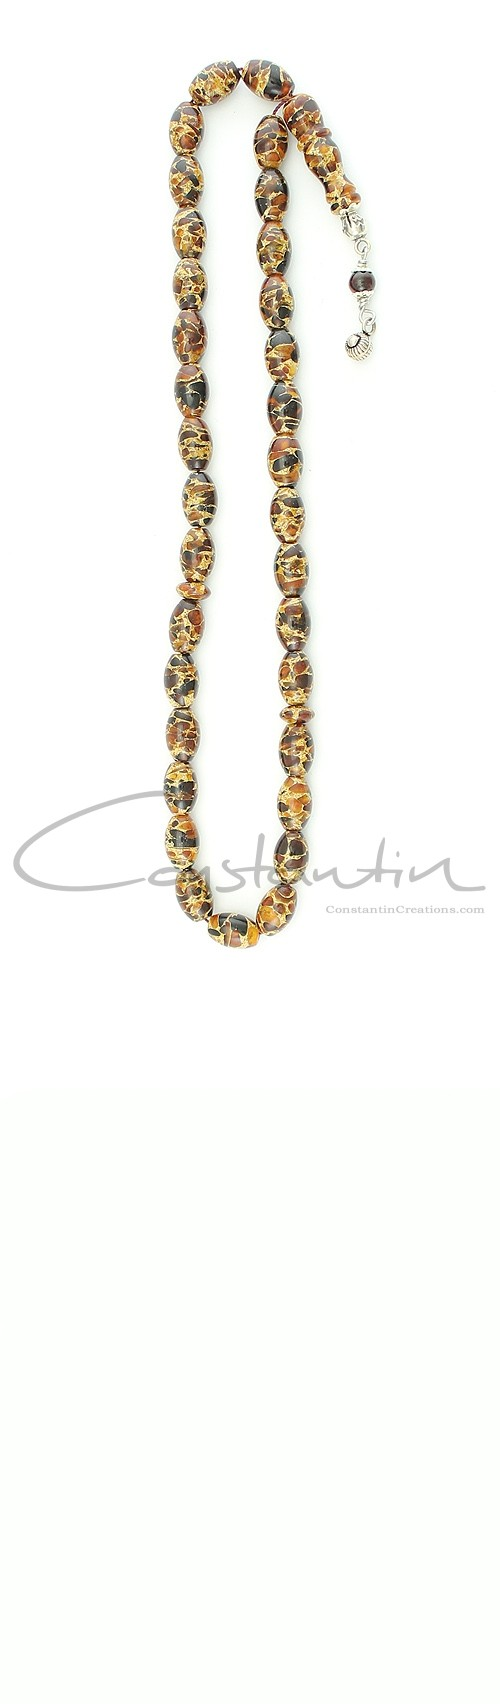 33 beads, Multicolor Mosaic amber worry beads set, made of natural, small amber pieces.